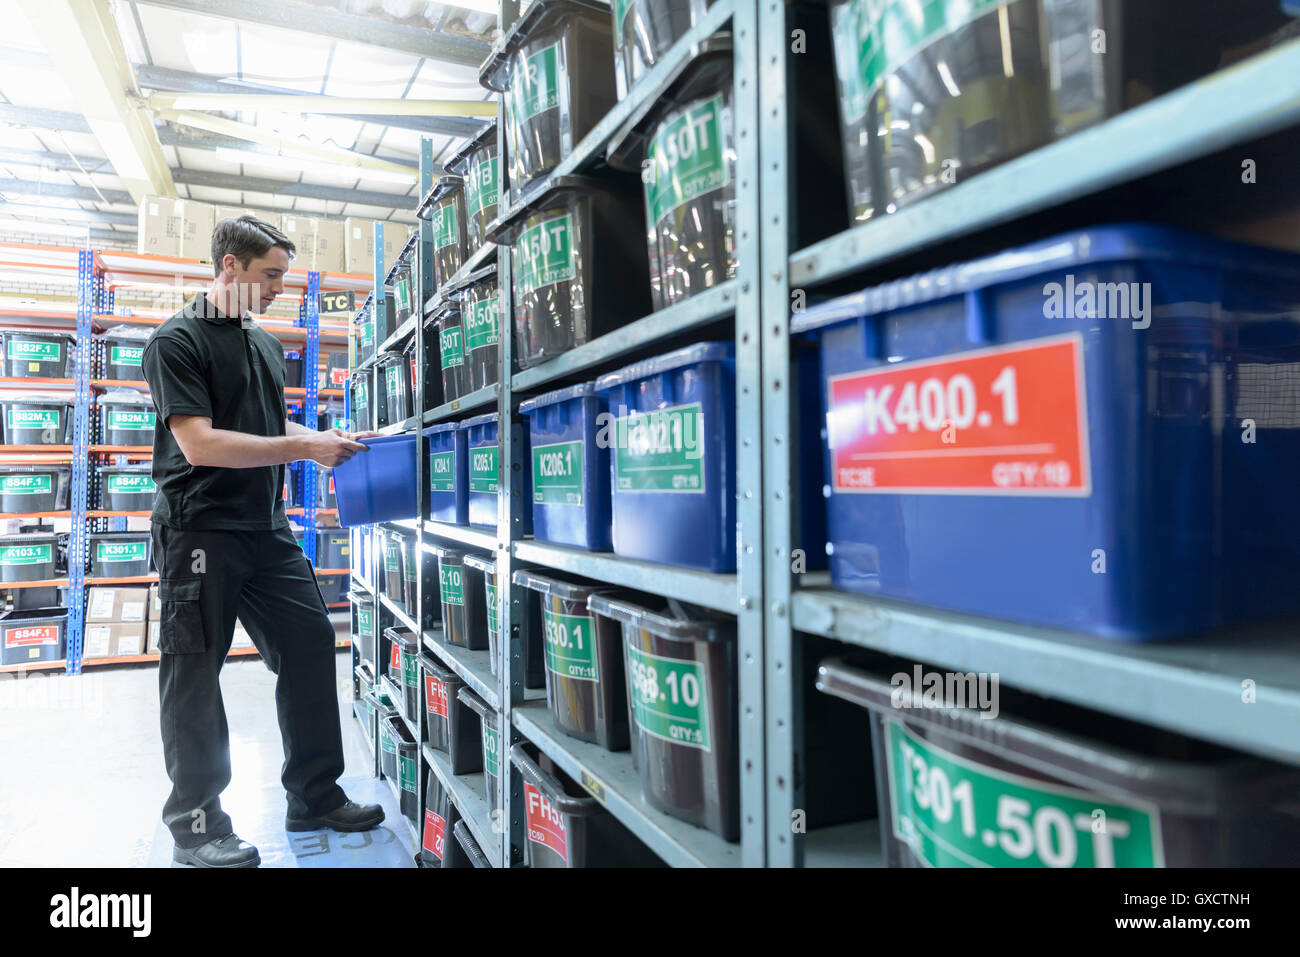 Worker choosing parts in electrical parts factory - Stock Image